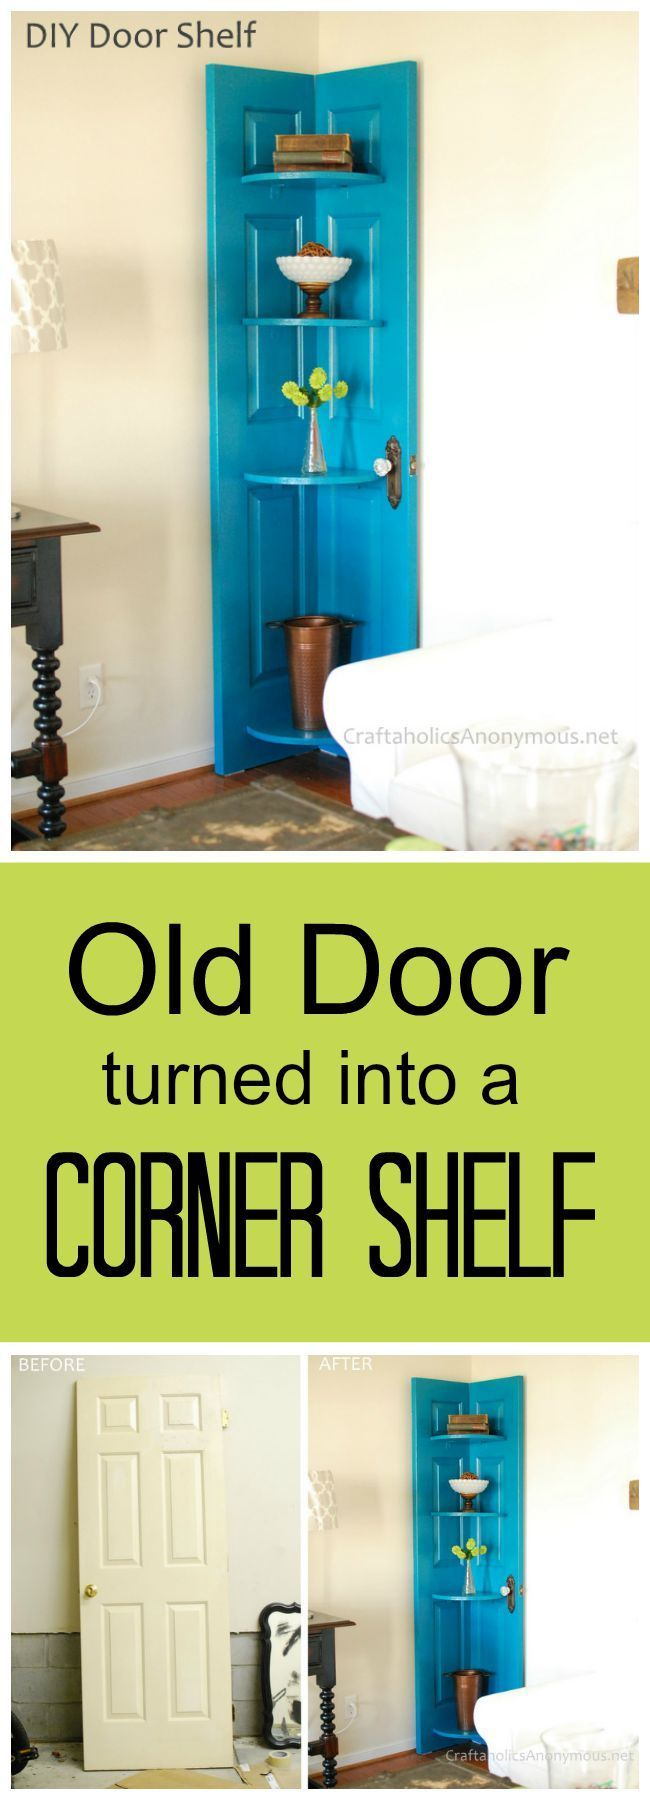 DIY Door Corner Shelf tutorial :: How to turn a door into a DIY corner shelf. Great way to use those hard to decorate corners + it makes cool home decor! (Cool Crafts For Your Room)